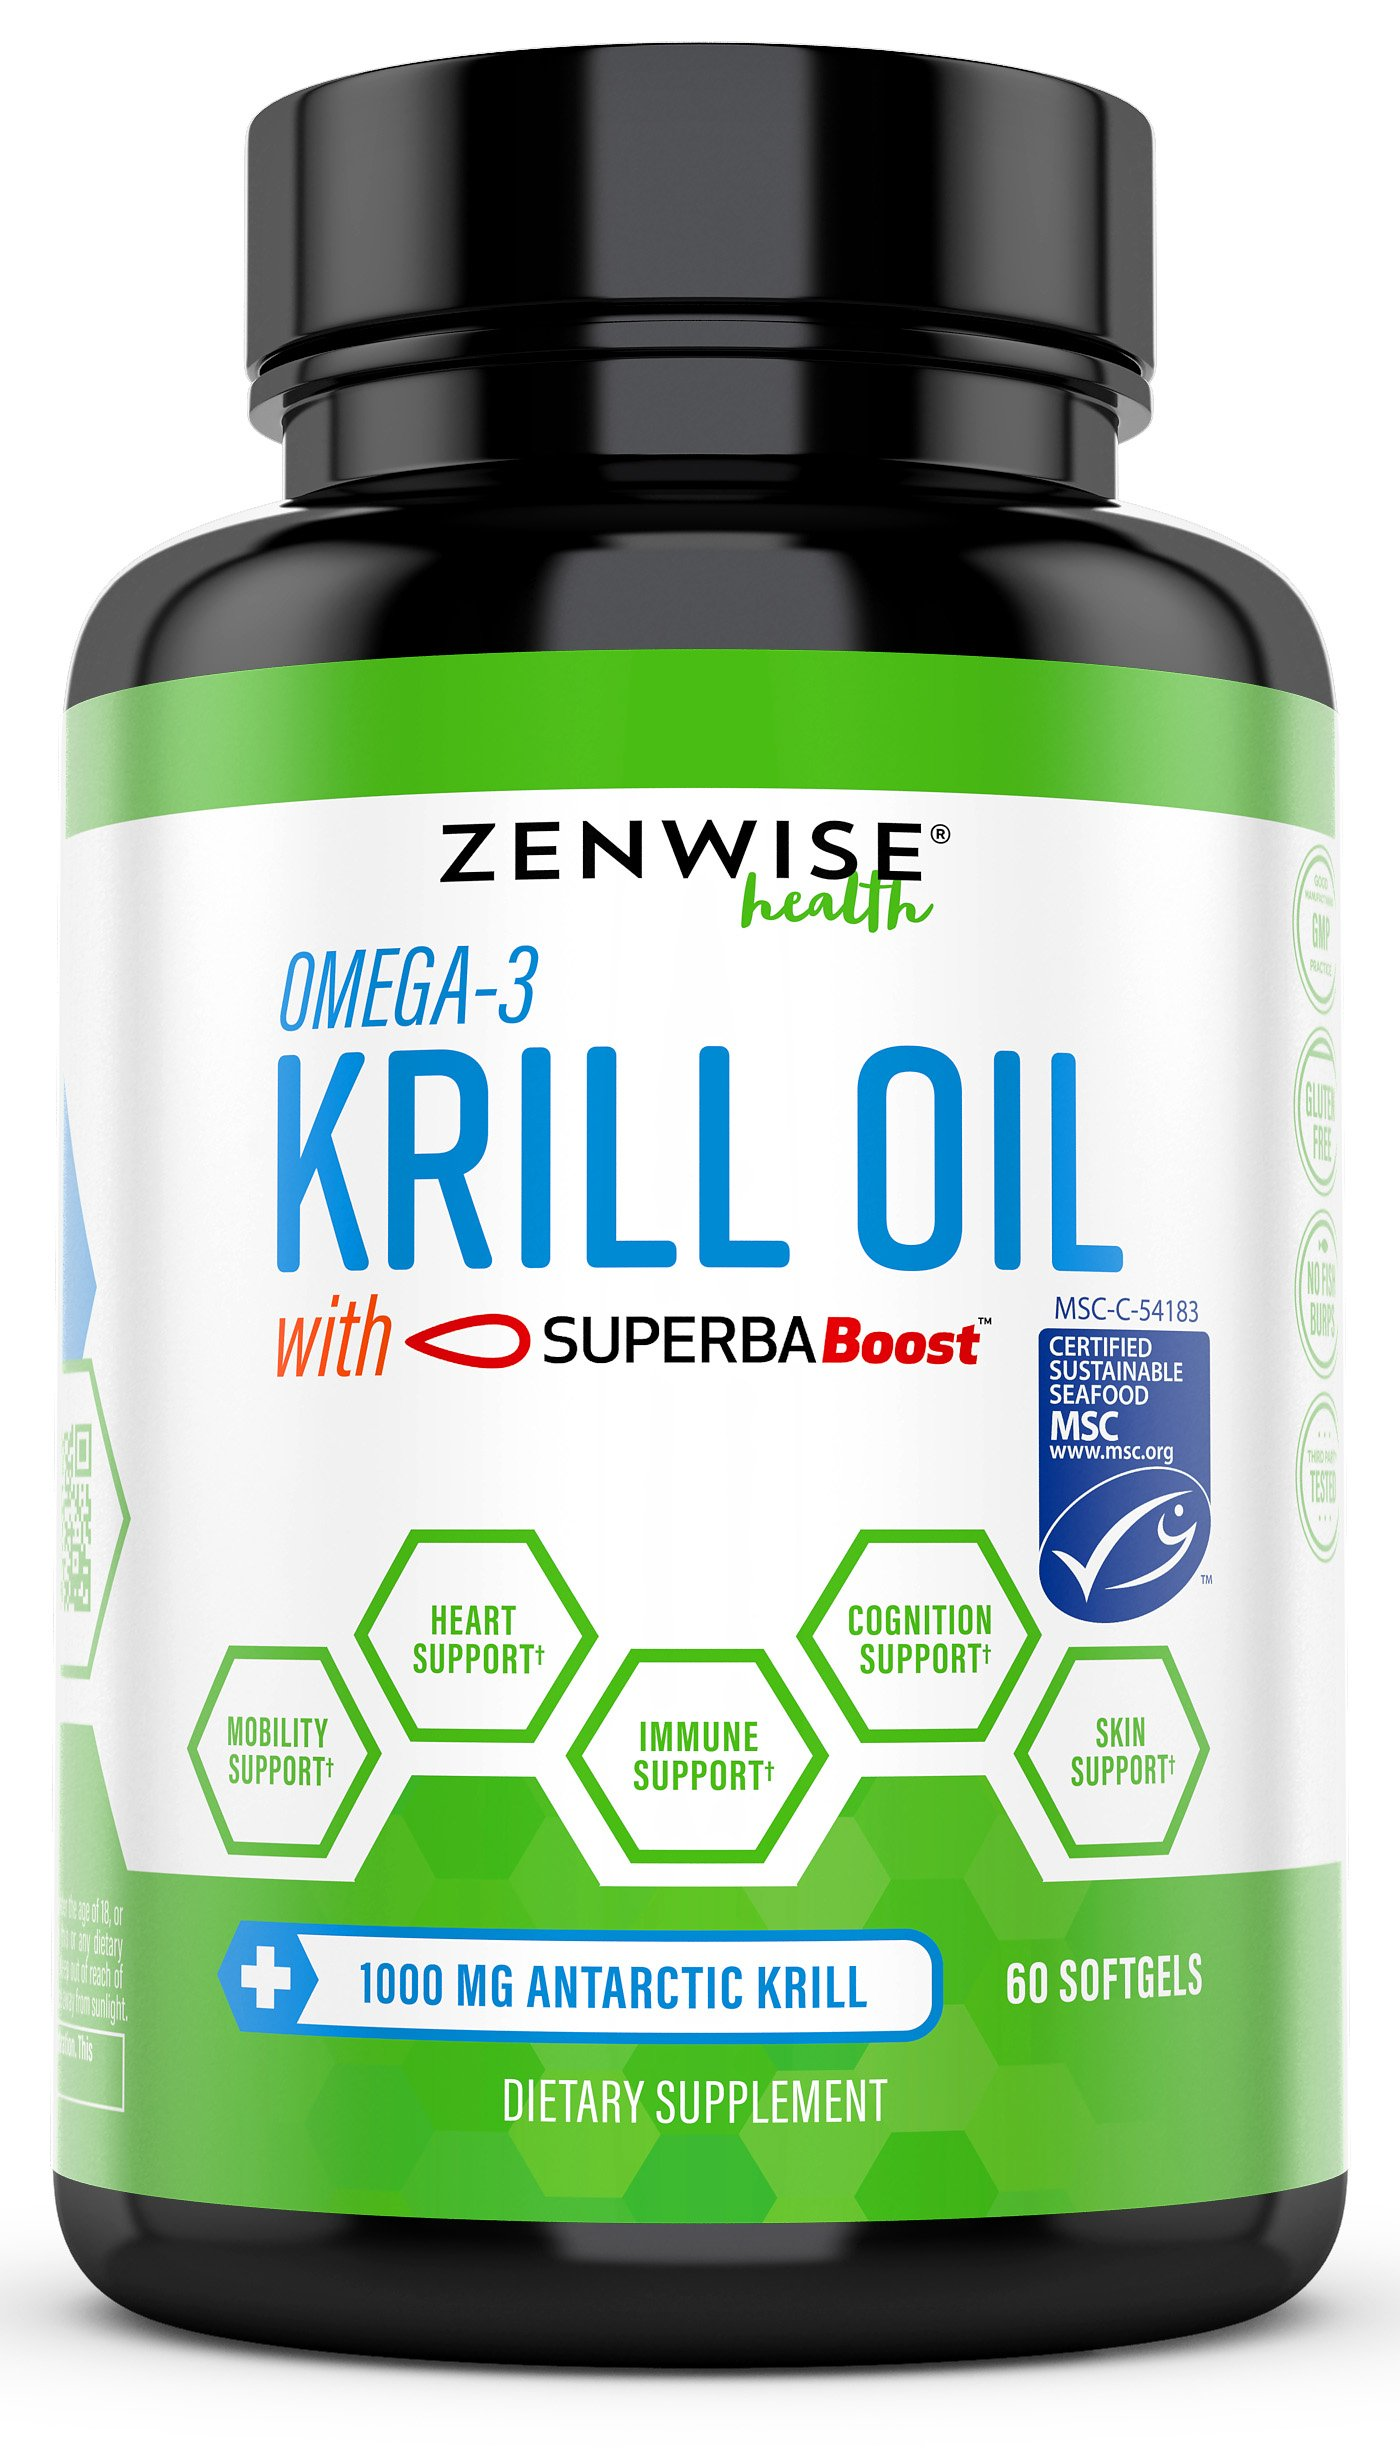 Omega 3 Antarctic Krill Oil 1000mg - MSC Certified Sustainable SuperbaBoostTM - With EPA & DHA Fatty Acids & Astaxanthin - Heart, Brain, Skin, Joint & Immune Support - 60 Softgels by Zenwise Health